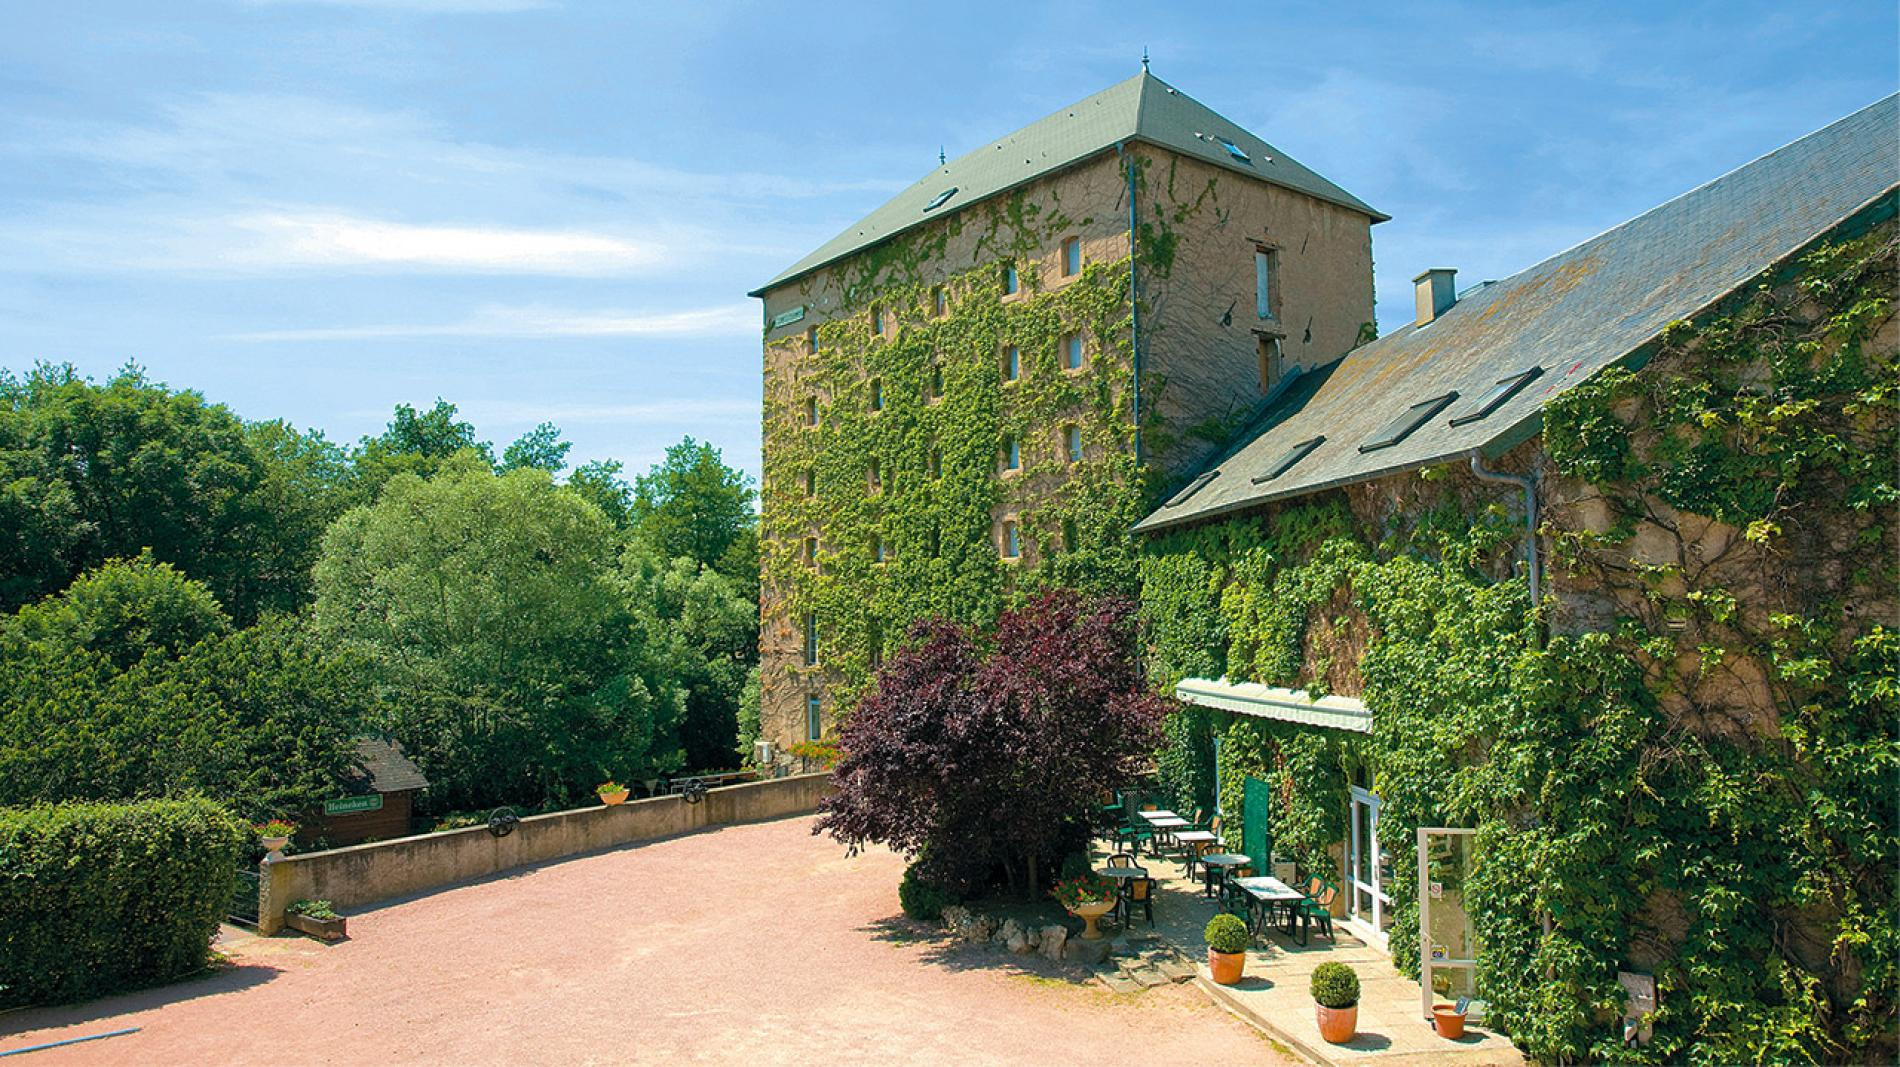 The Auberge Du Moulin Marin is housed in a former 19th century mill